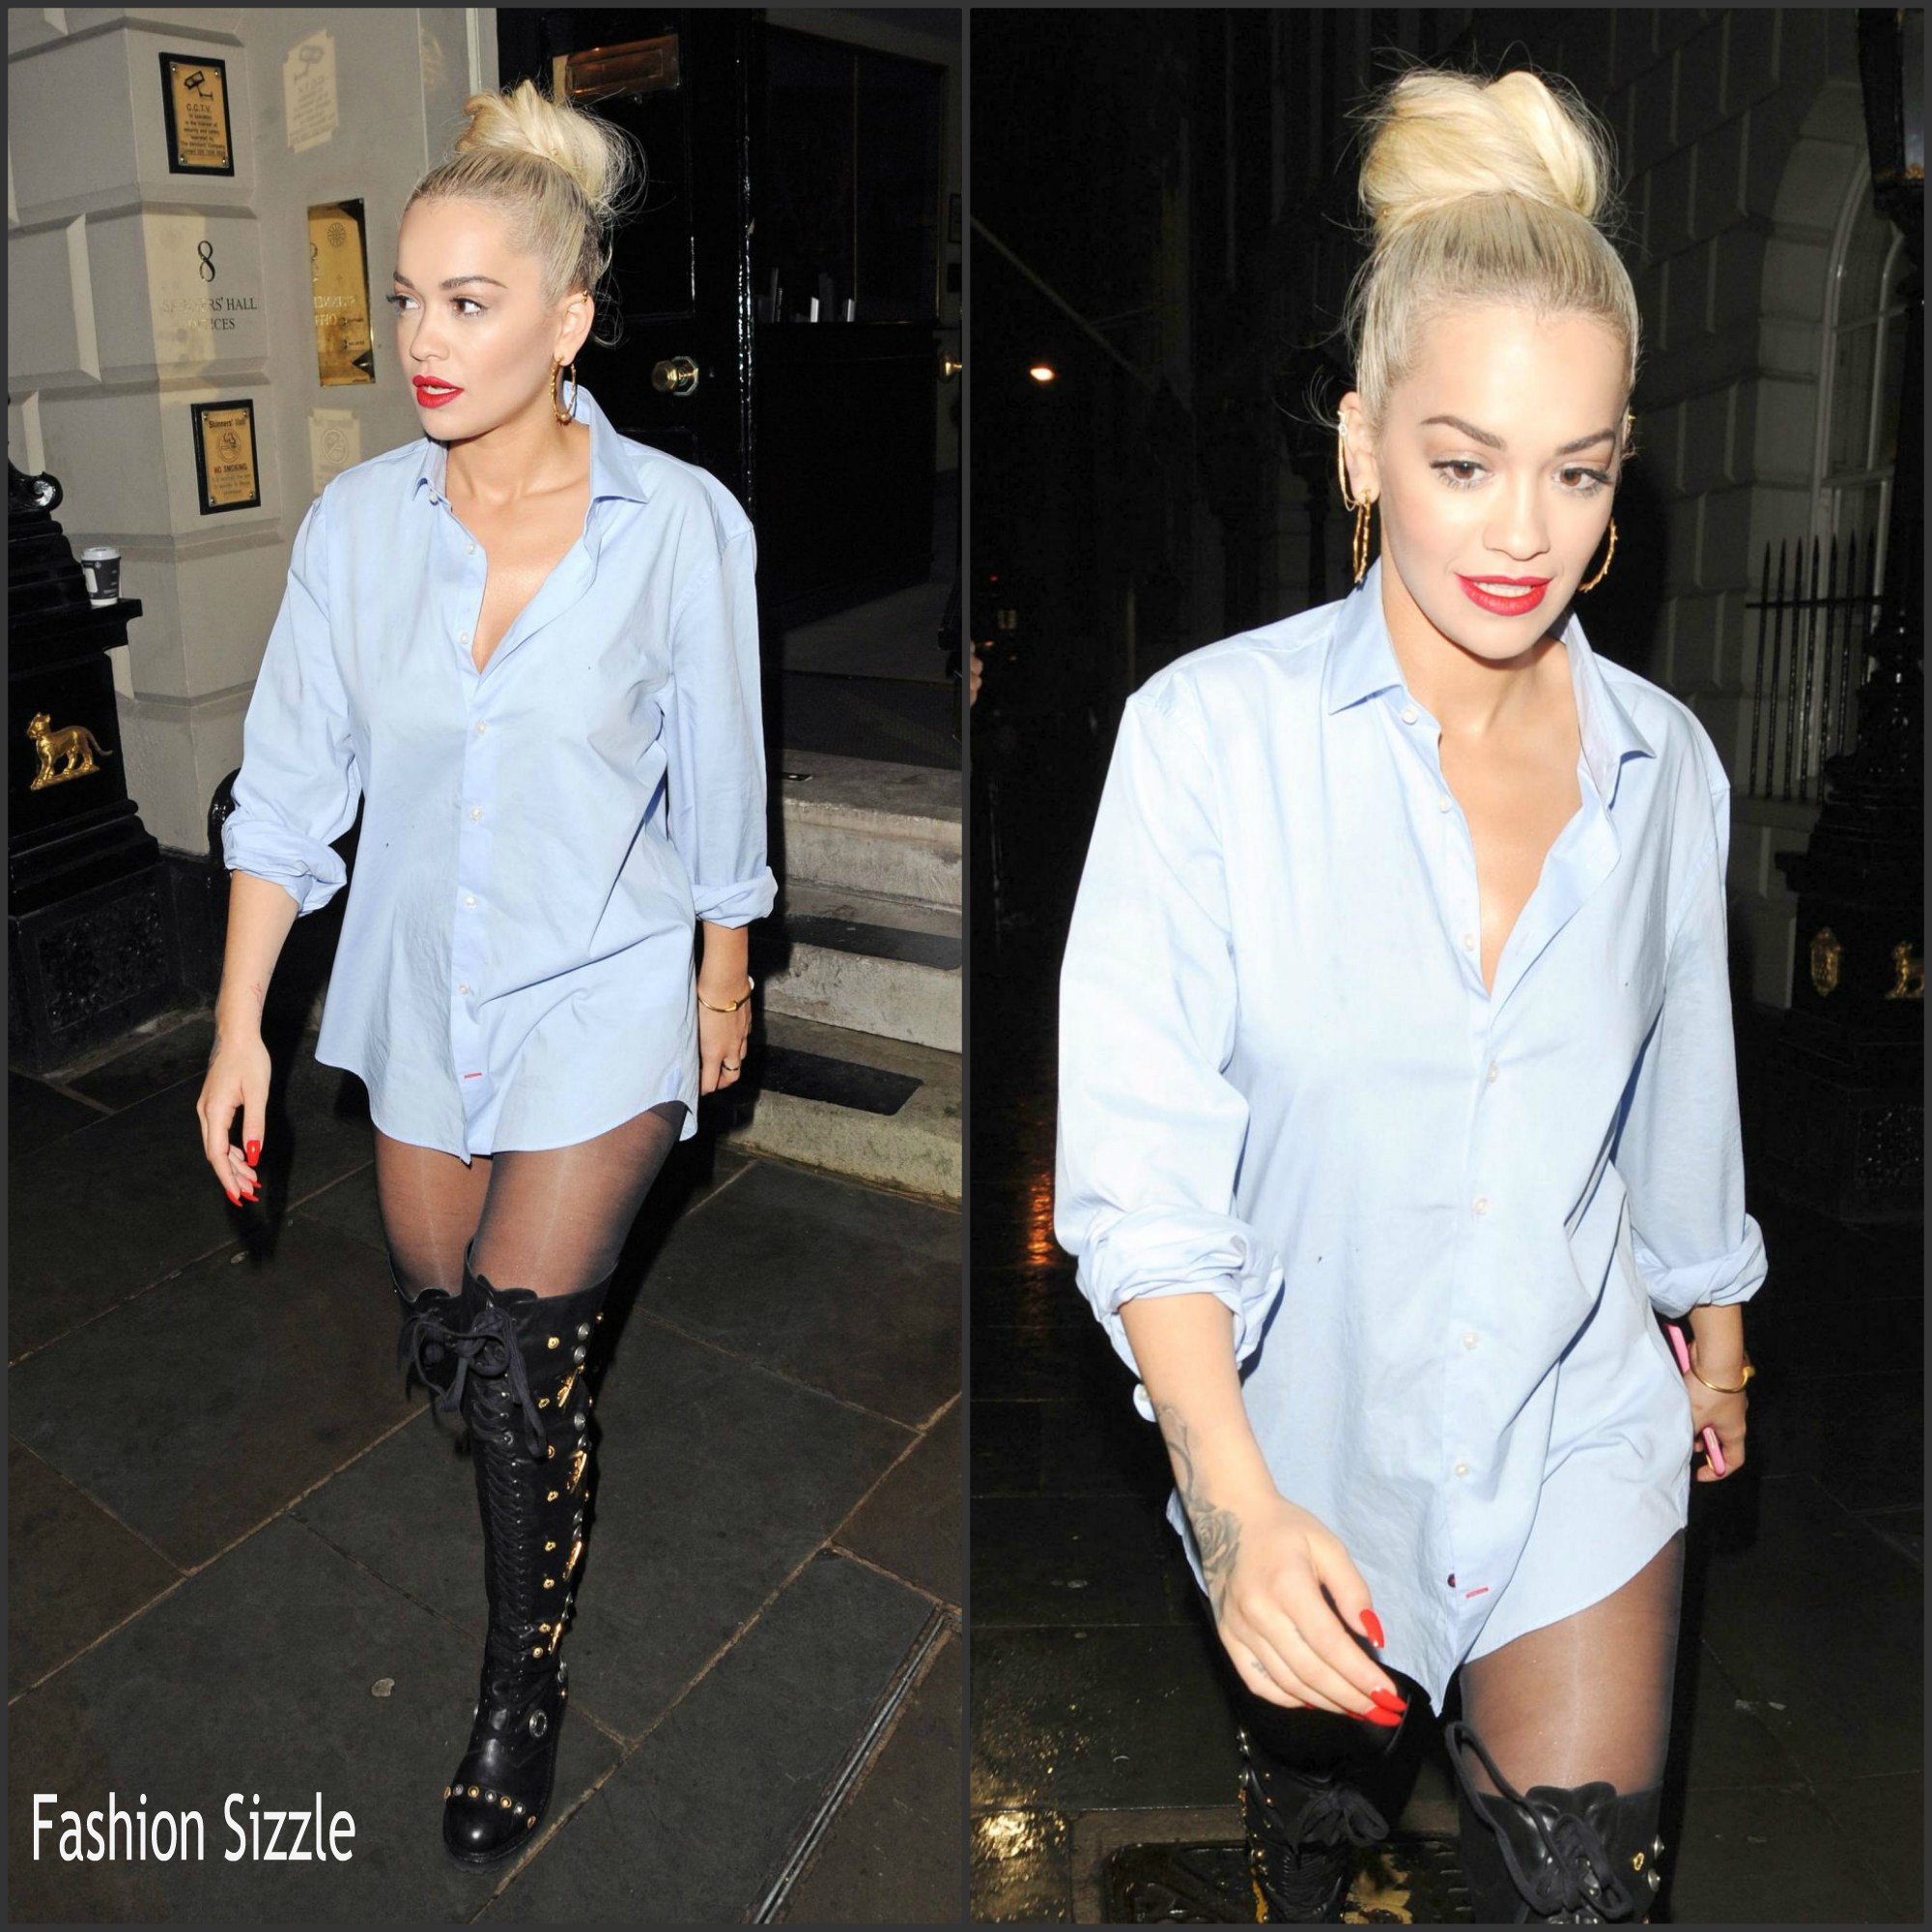 rita-ora-streetstyle-out-in-london